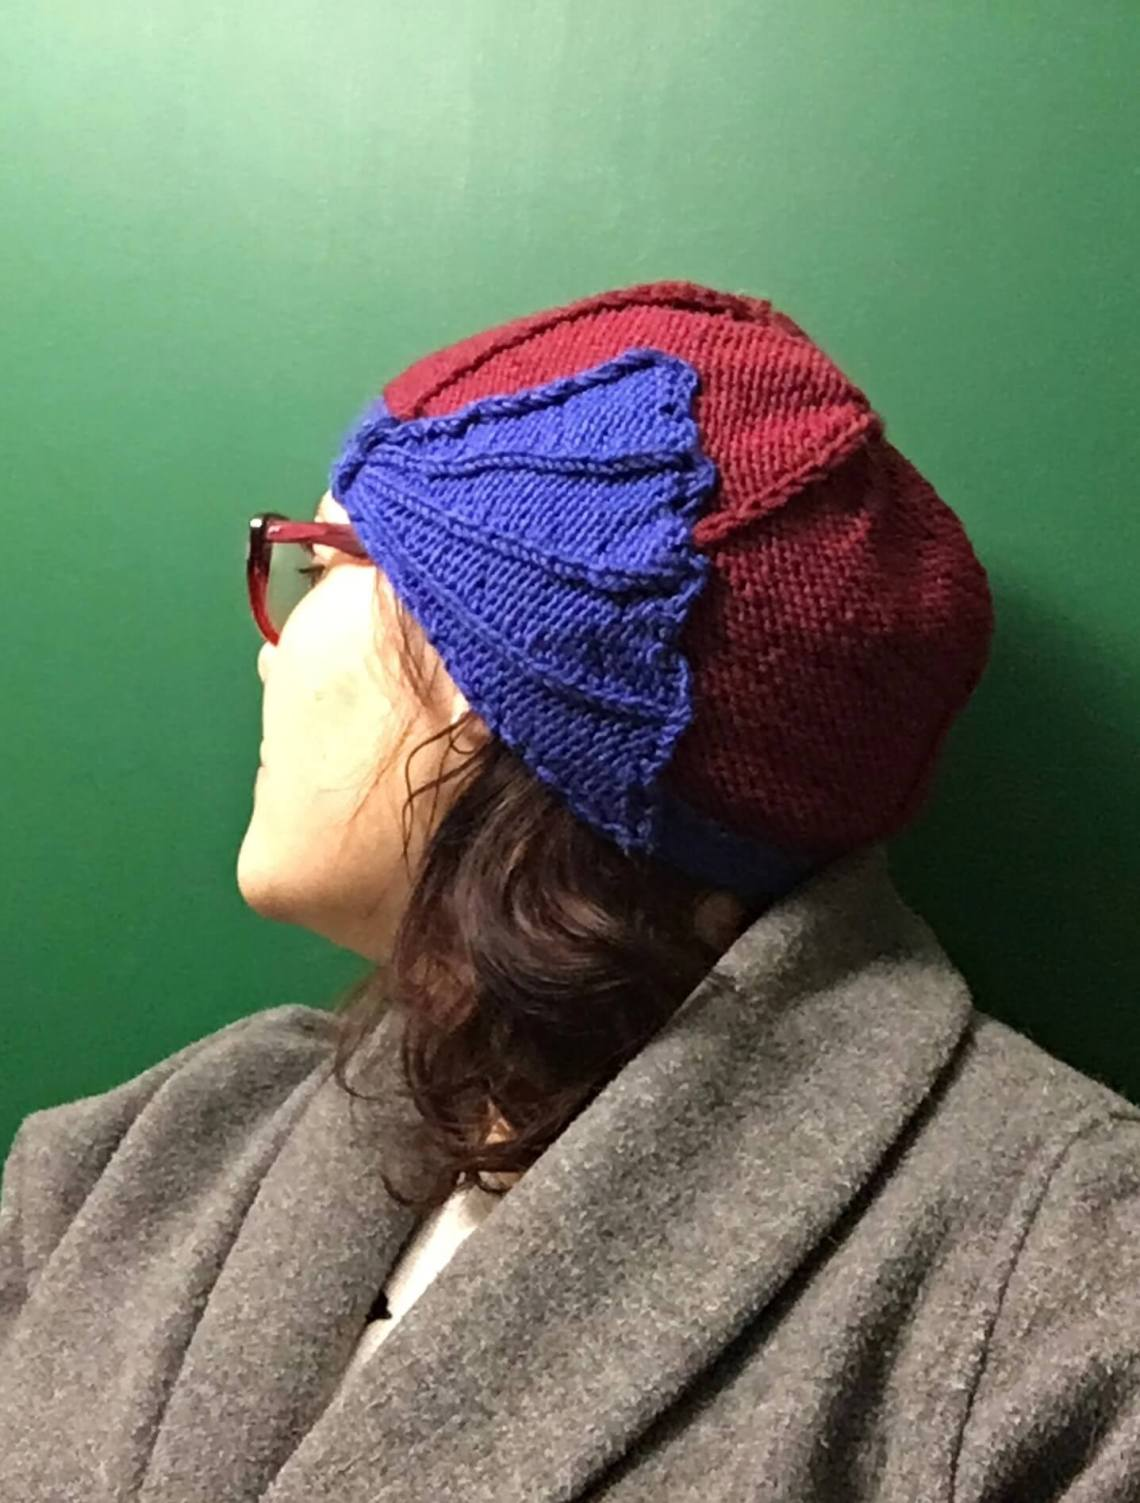 showing of the art deco styling of this knitted hat